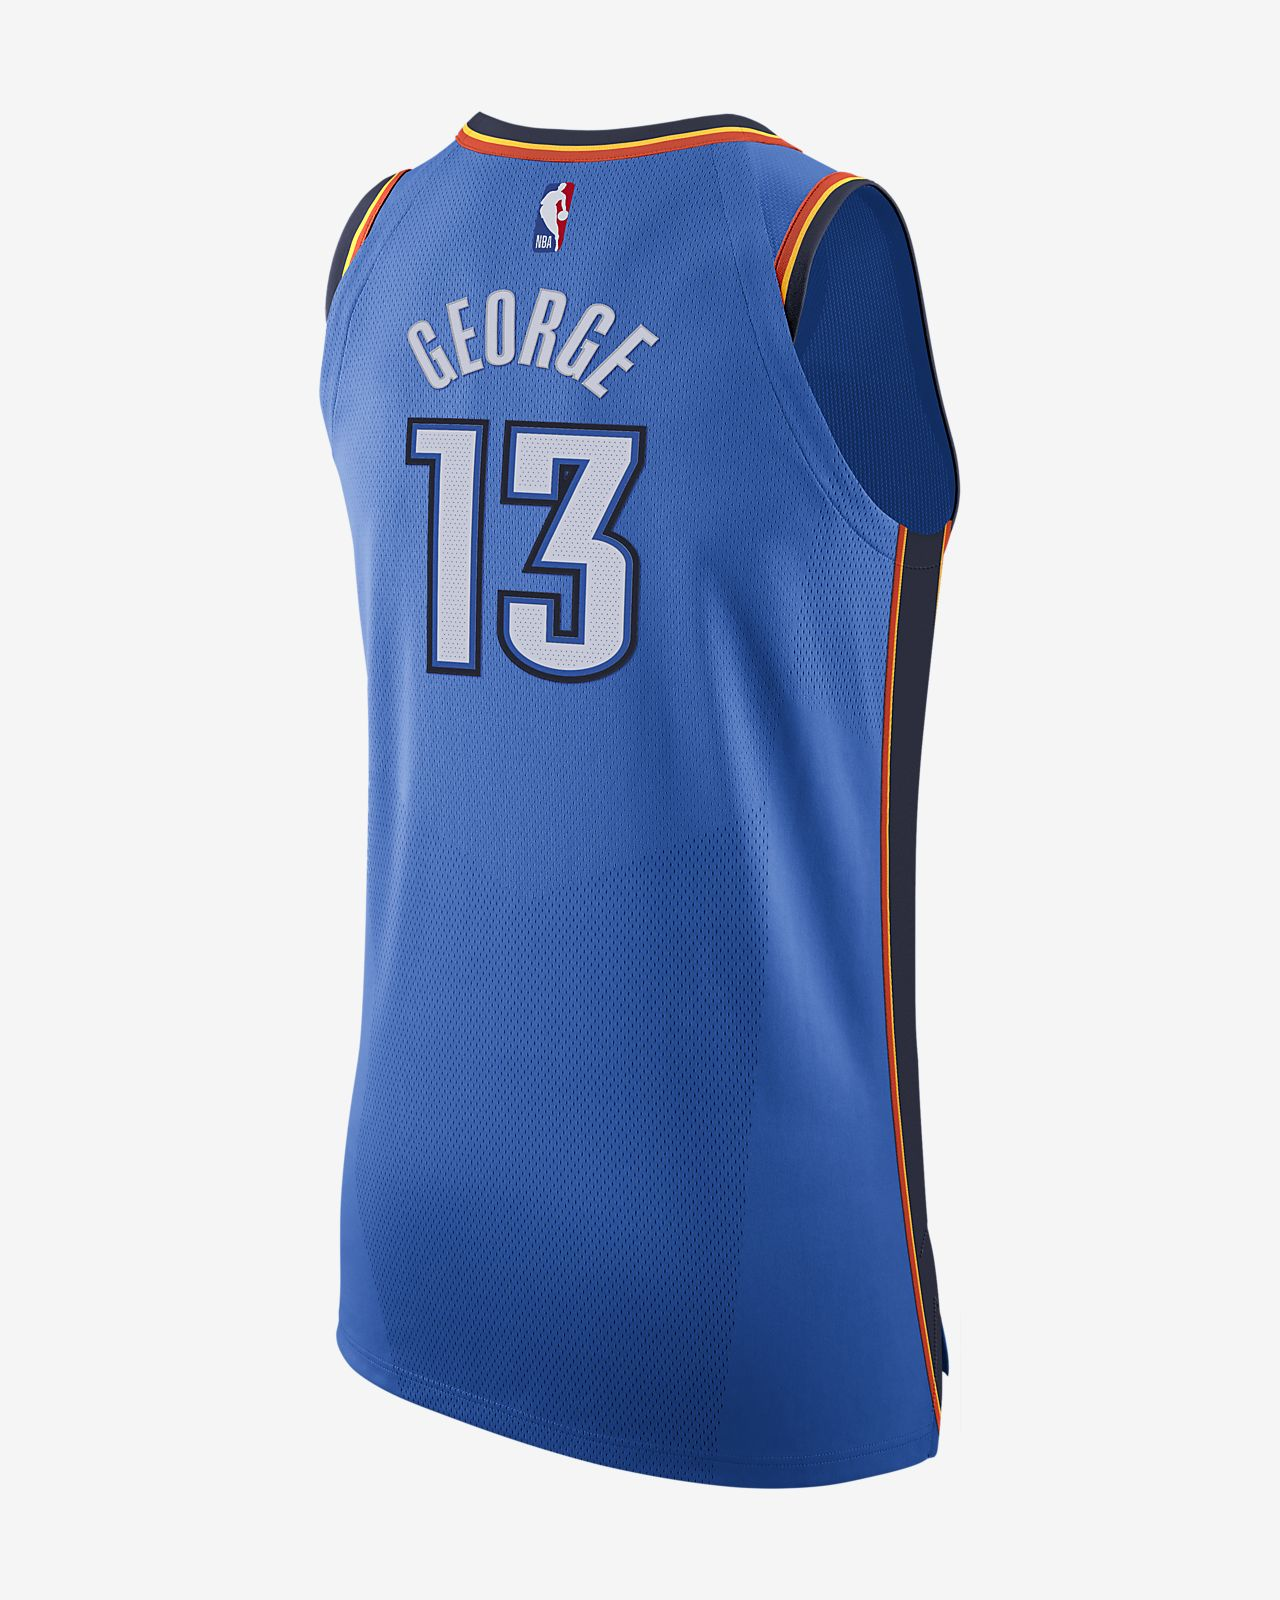 69275e120 ... Paul George Icon Edition Authentic Jersey (Oklahoma City Thunder) Men s  Nike NBA Connected Jersey